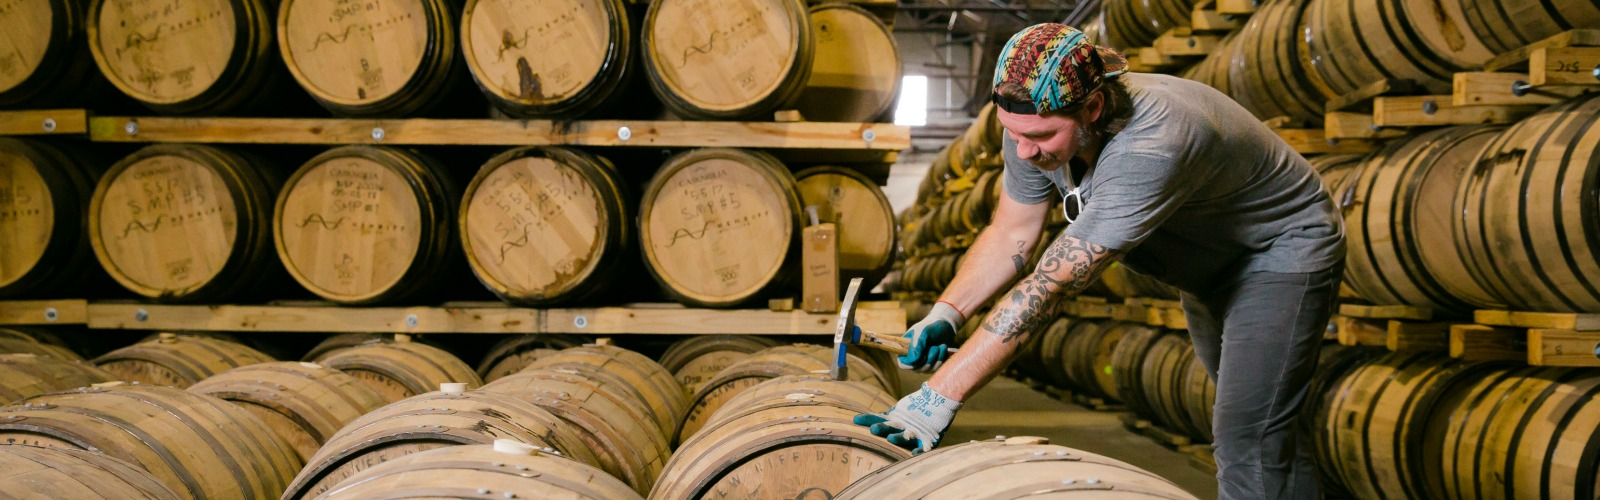 New Riff's bourbon has been barrel-aged for four years. <span class='image-credits'>New Riff Distilling</span>